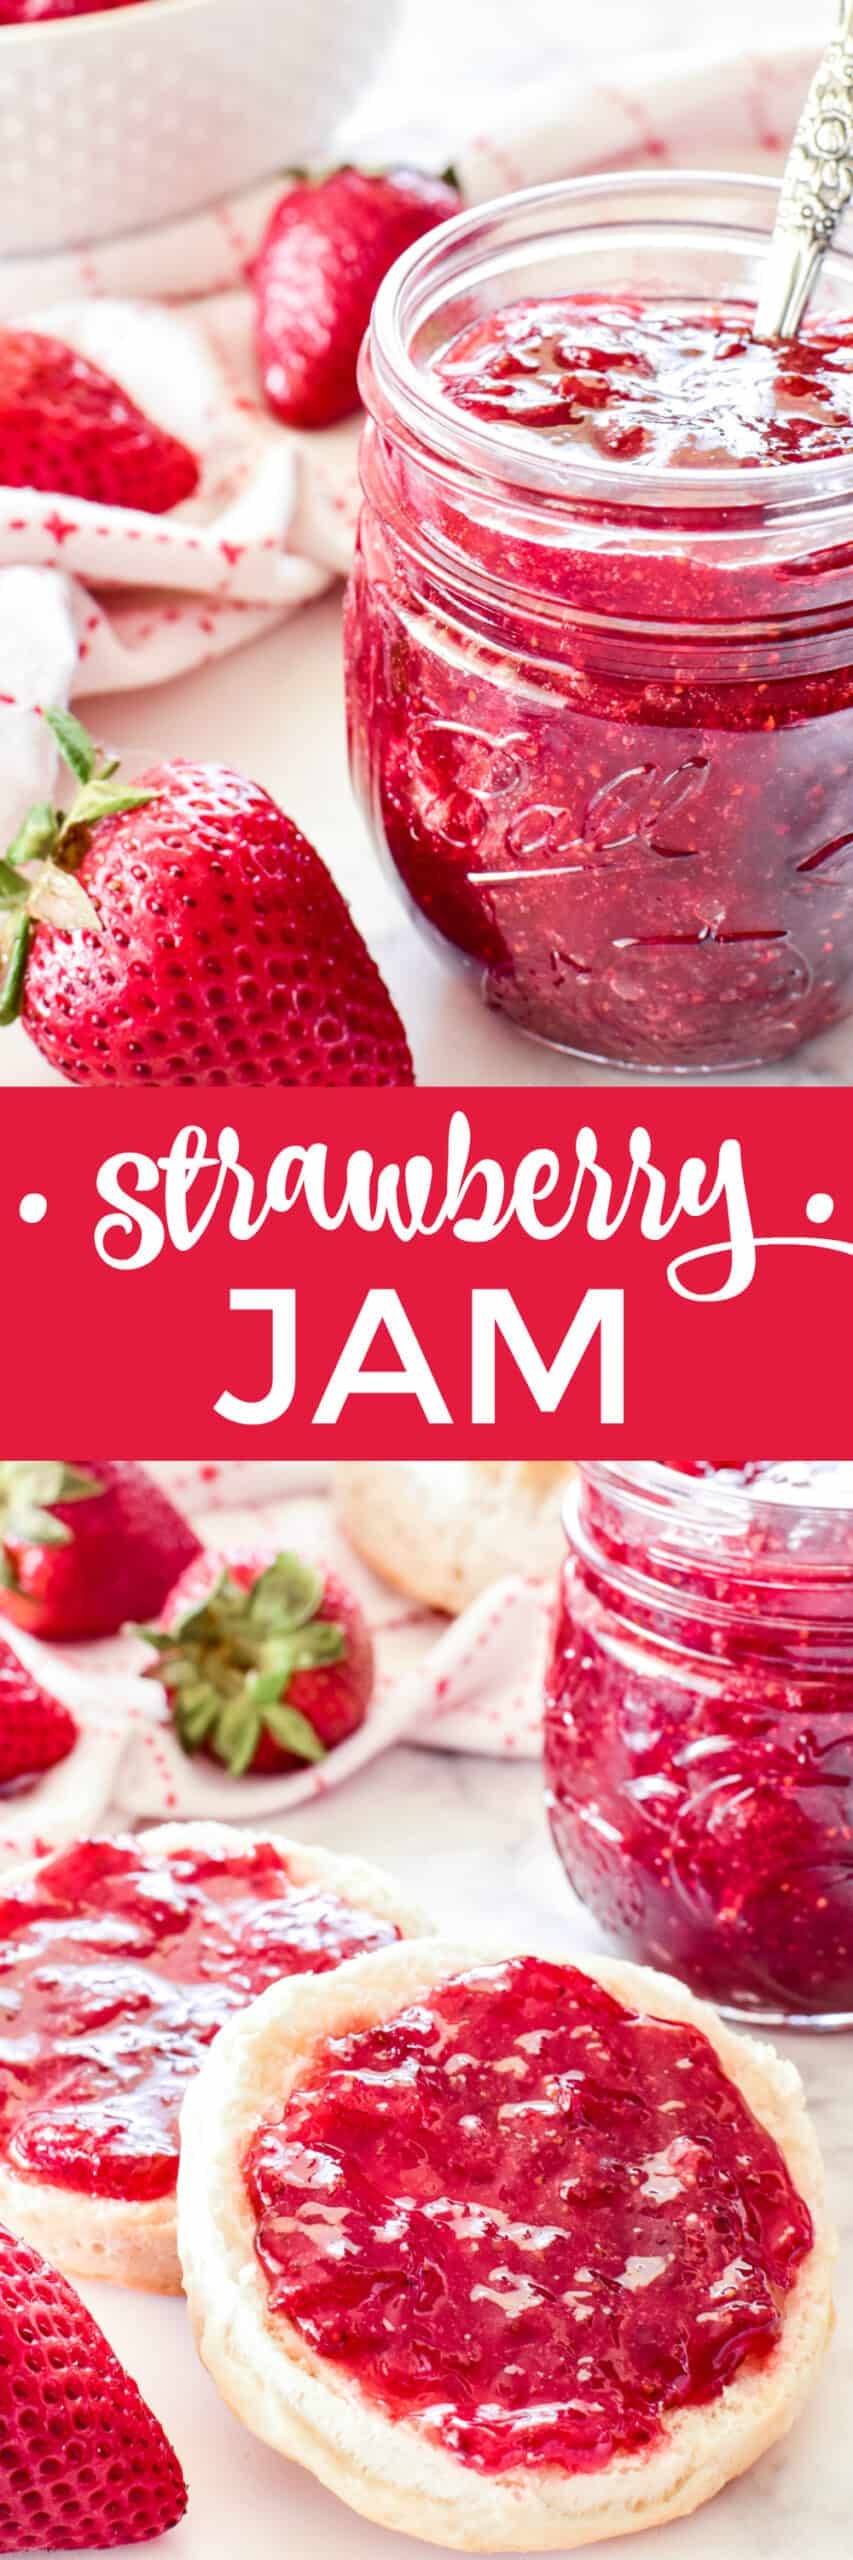 Collage image of jam in jar and on a biscuit